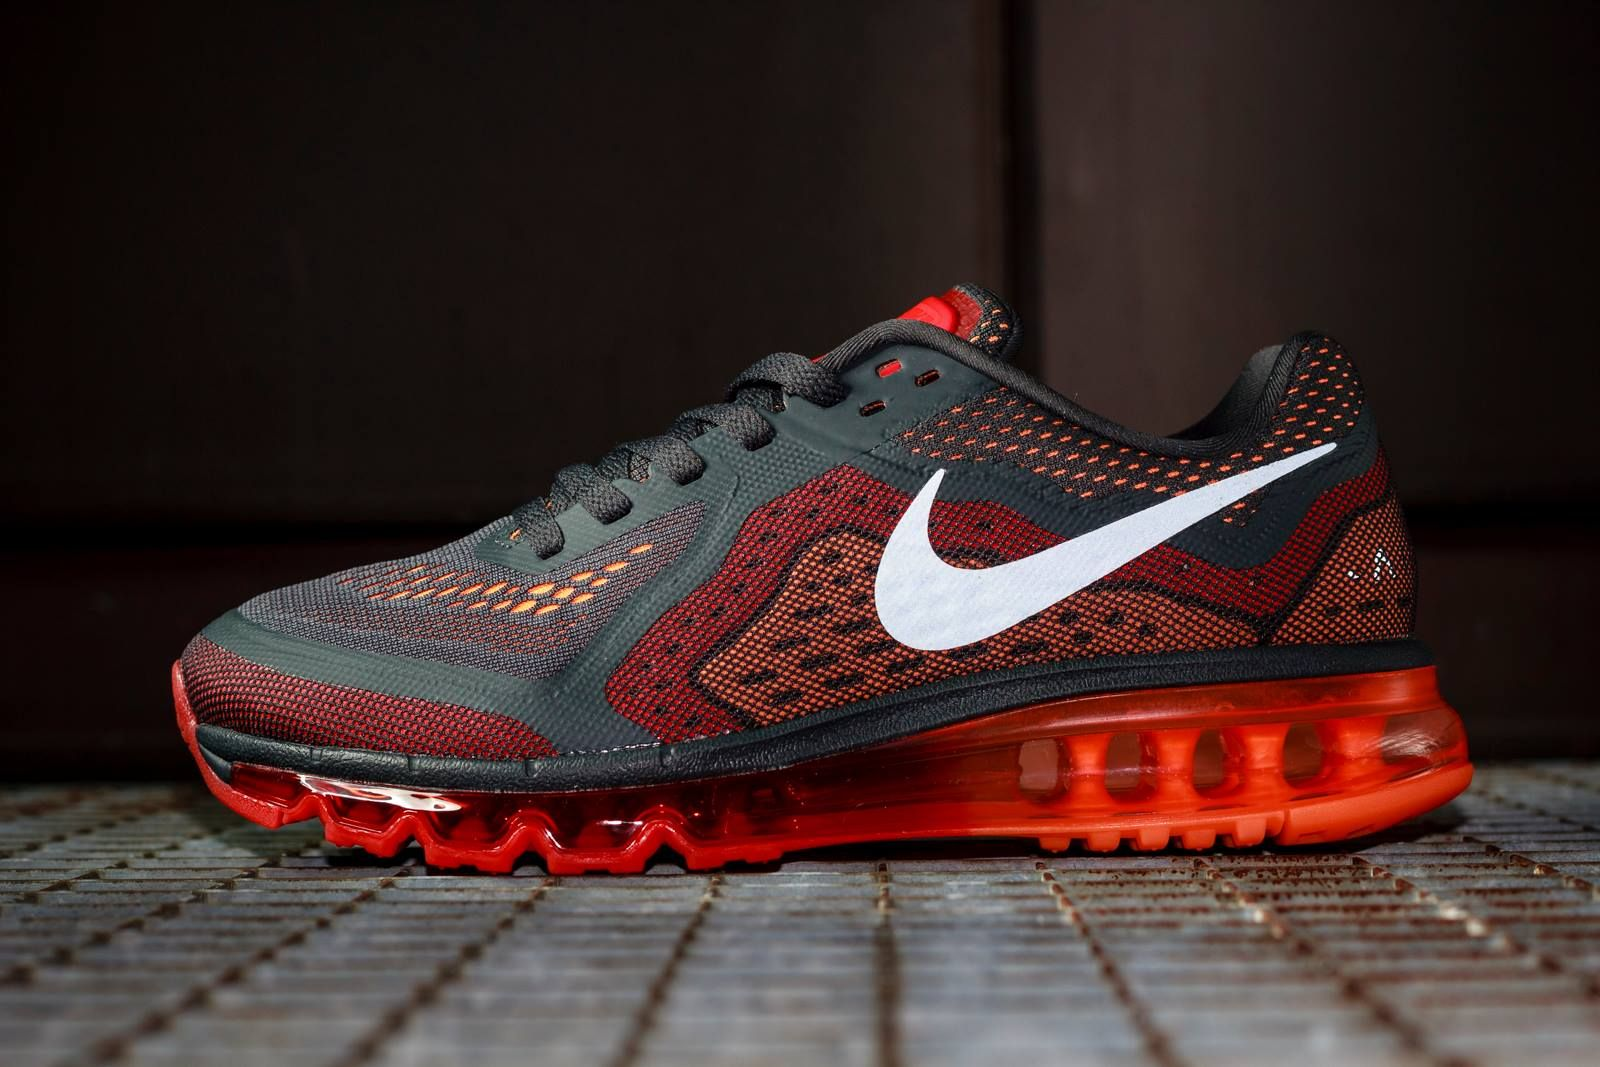 Nike Air Max 2014 | Shoes in 2019 | Shoes, Sneakers nike